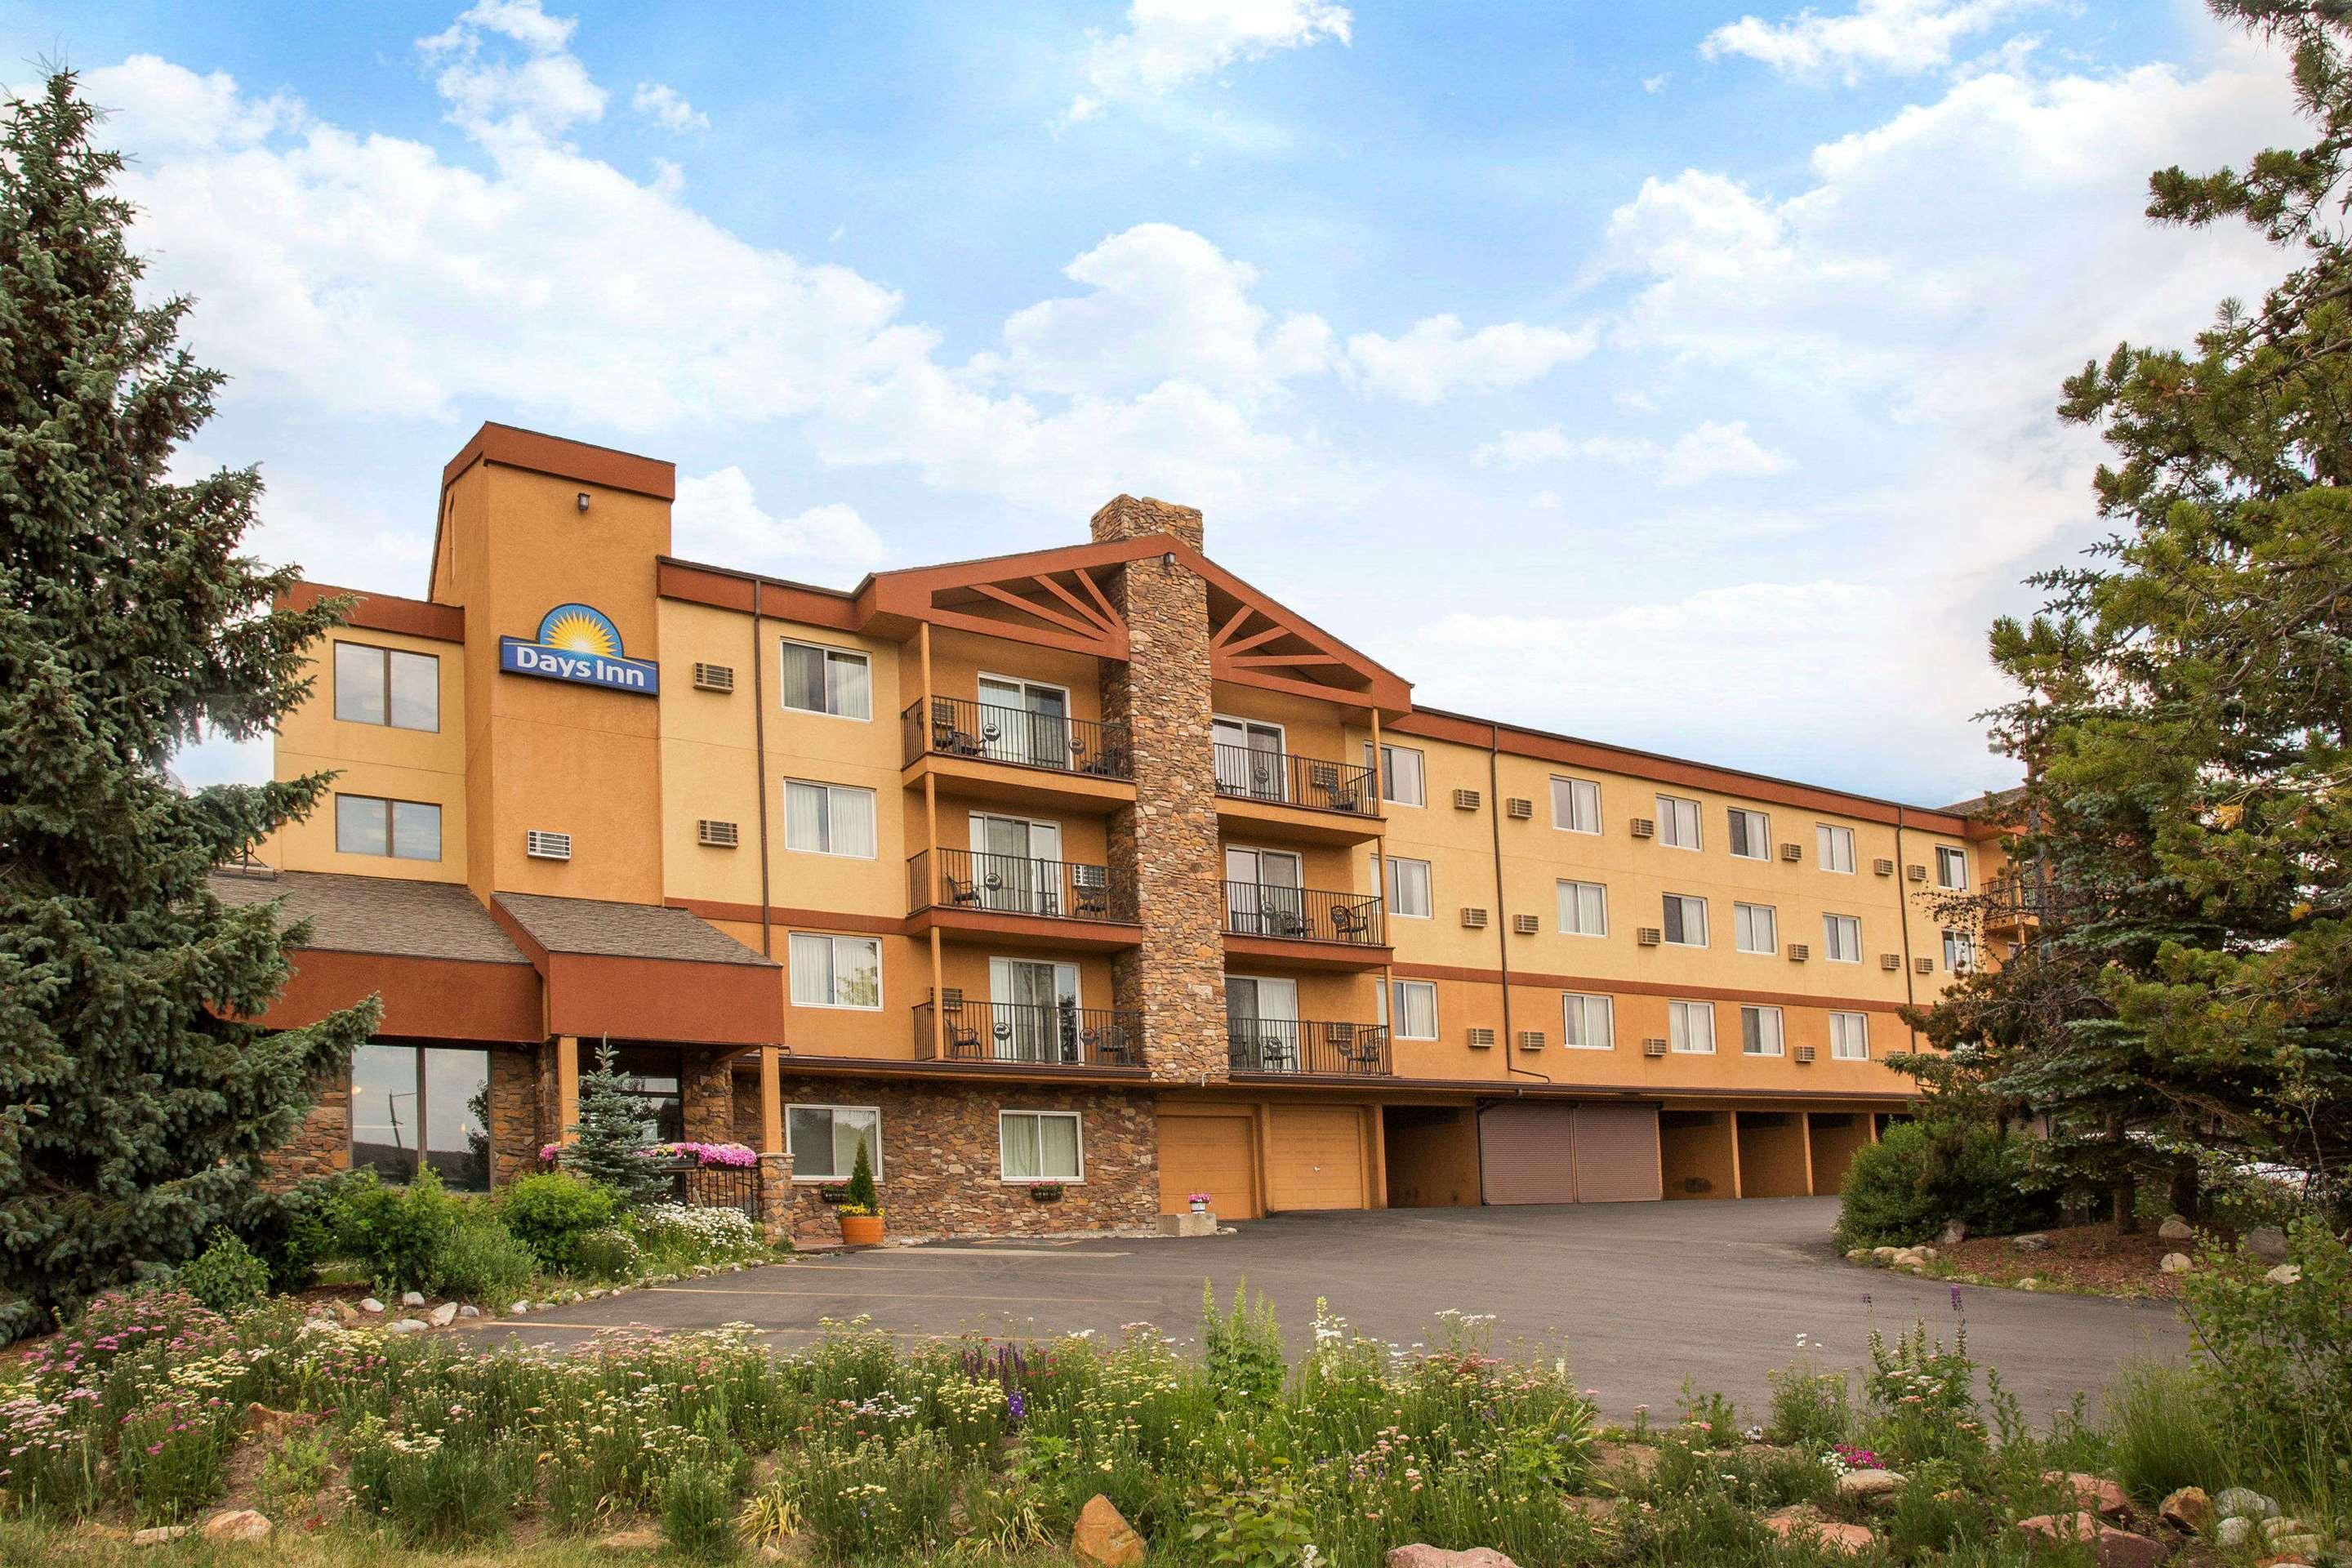 Days Inn by Wyndham Silverthorne